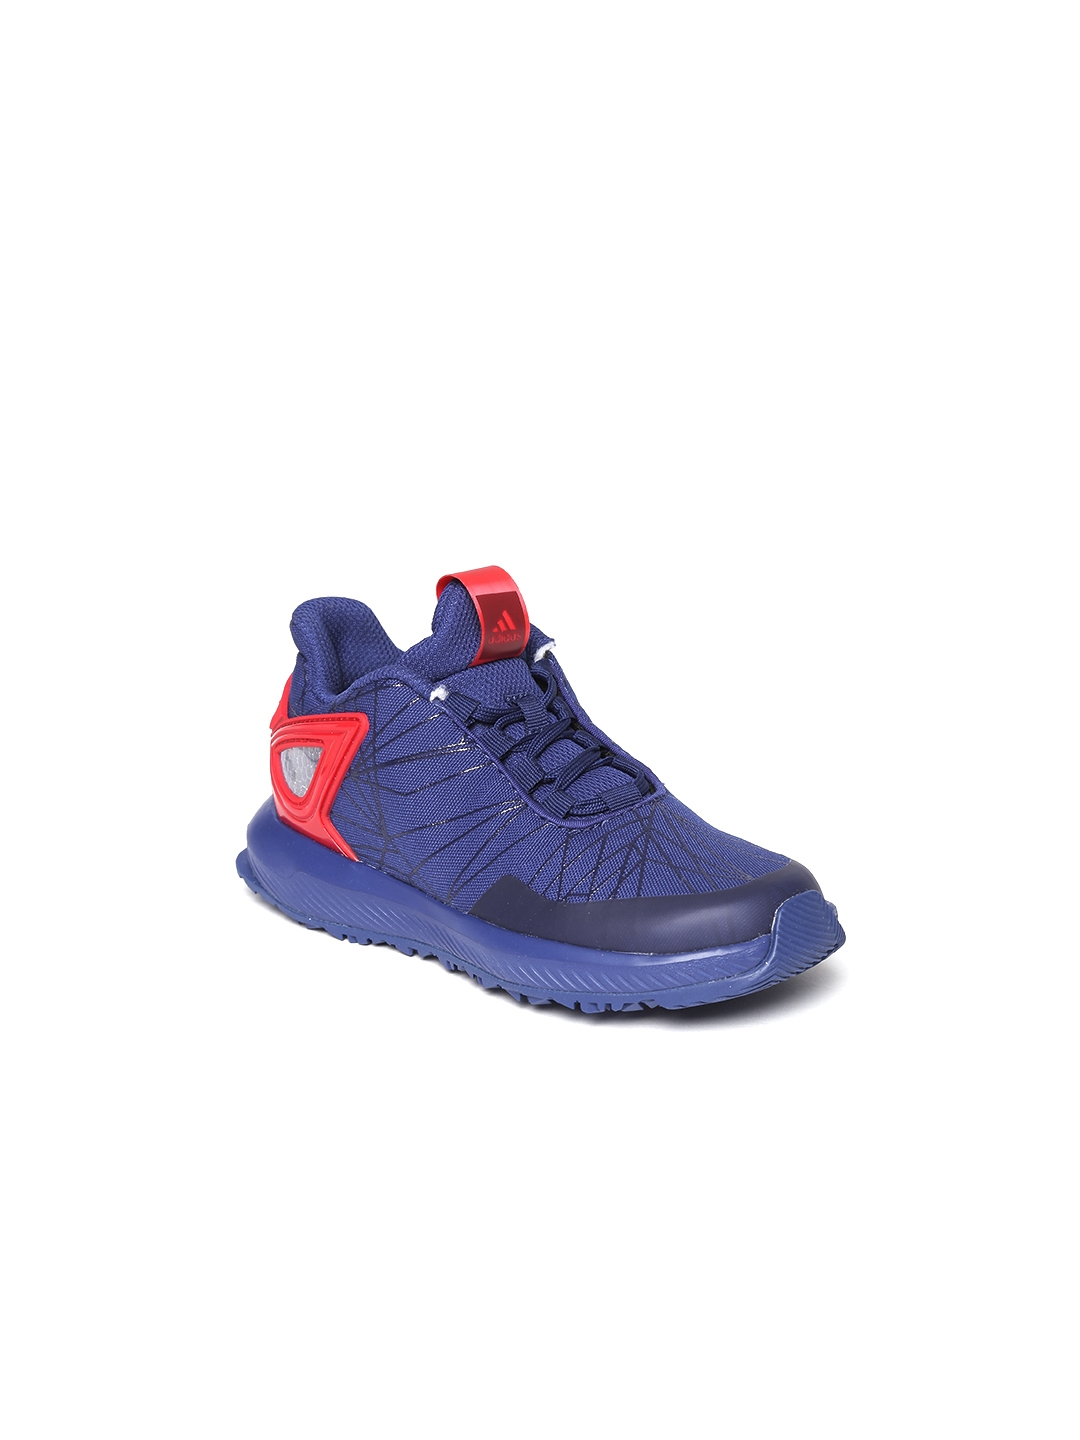 8f8cd4ee0d5b91 Buy ADIDAS Kids Blue Spider Man Rapida Running Shoes - Sports Shoes ...